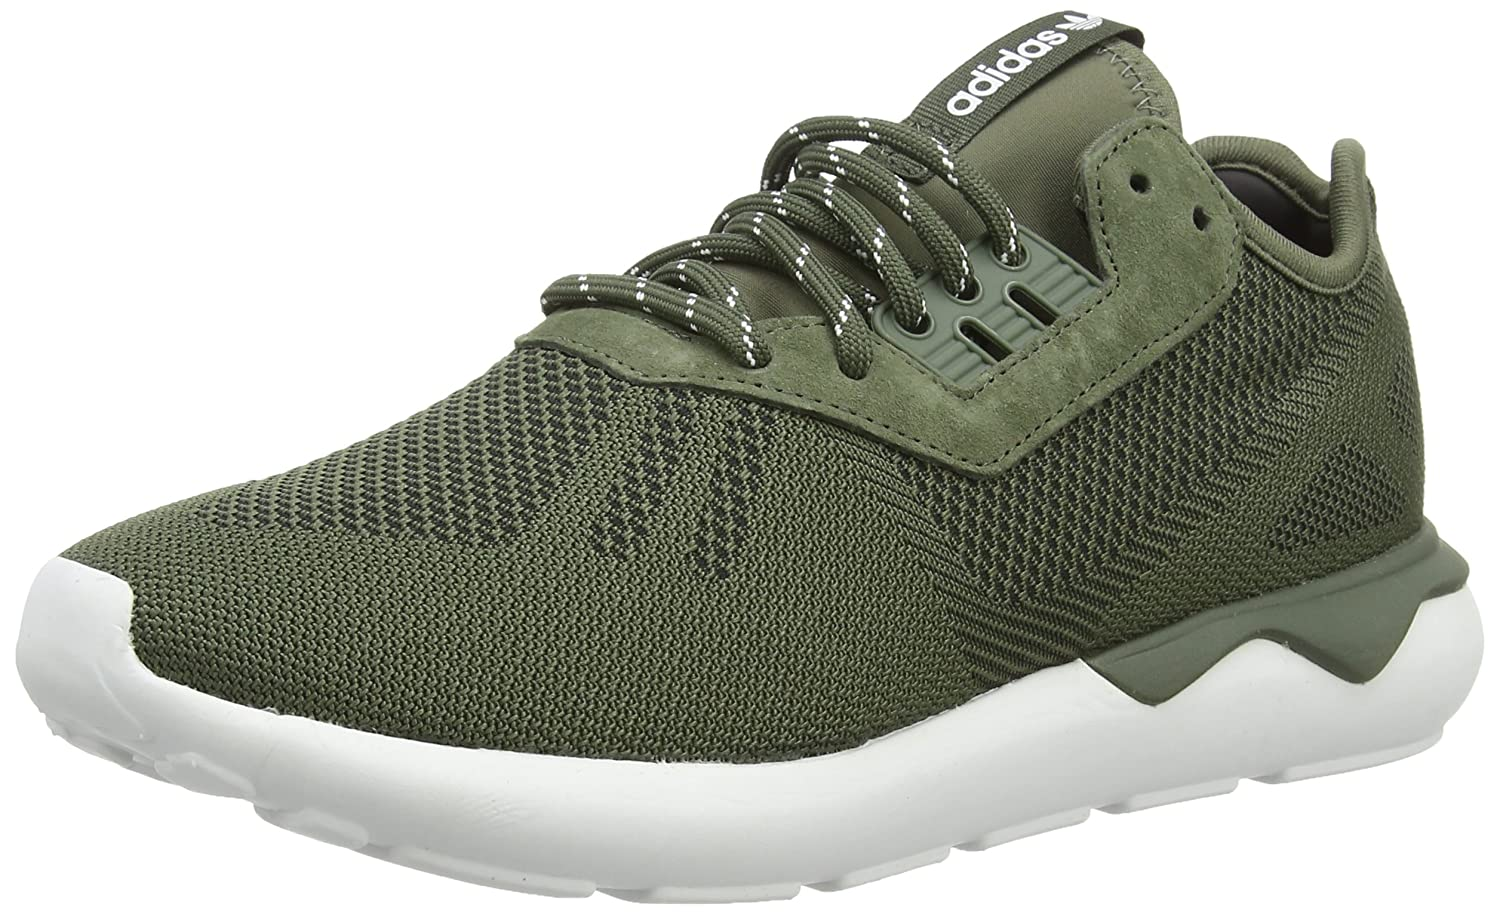 c7bbca7e10fa99 adidas Men s Tubular Runner Weave Running Shoes  Amazon.co.uk  Shoes   Bags